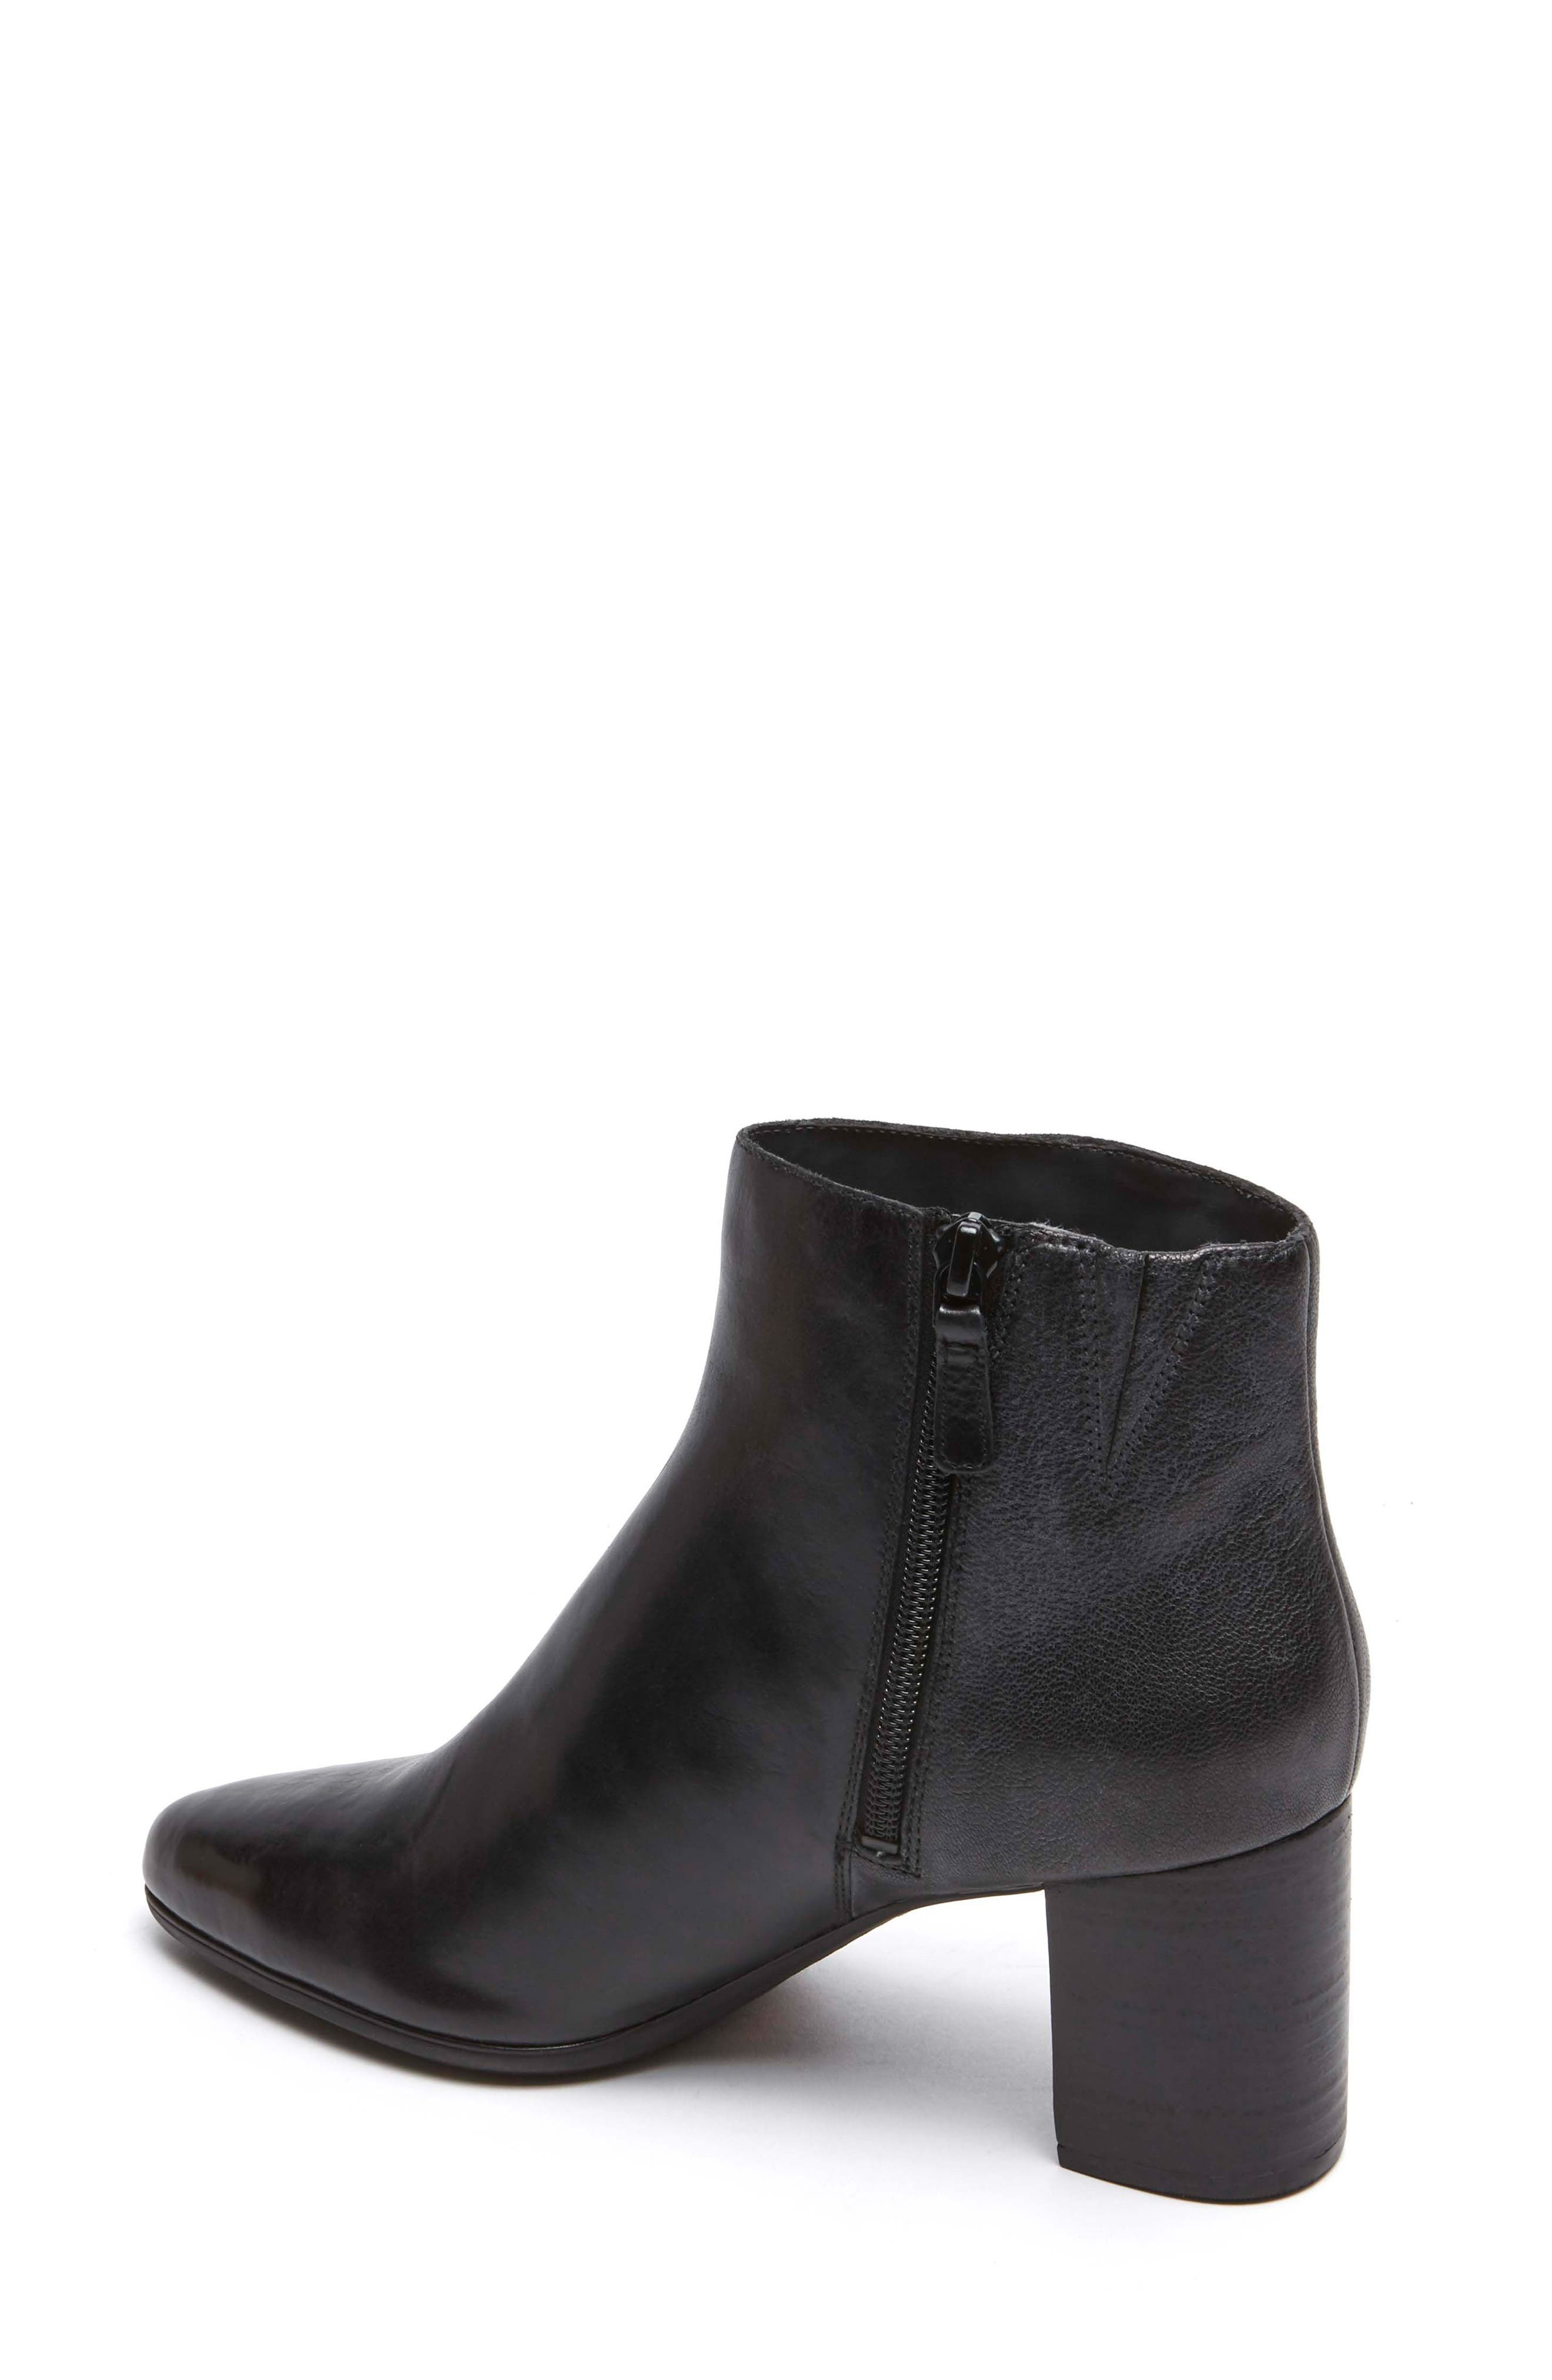 Lynix Luxe Bootie,                             Alternate thumbnail 2, color,                             BLACK LEATHER